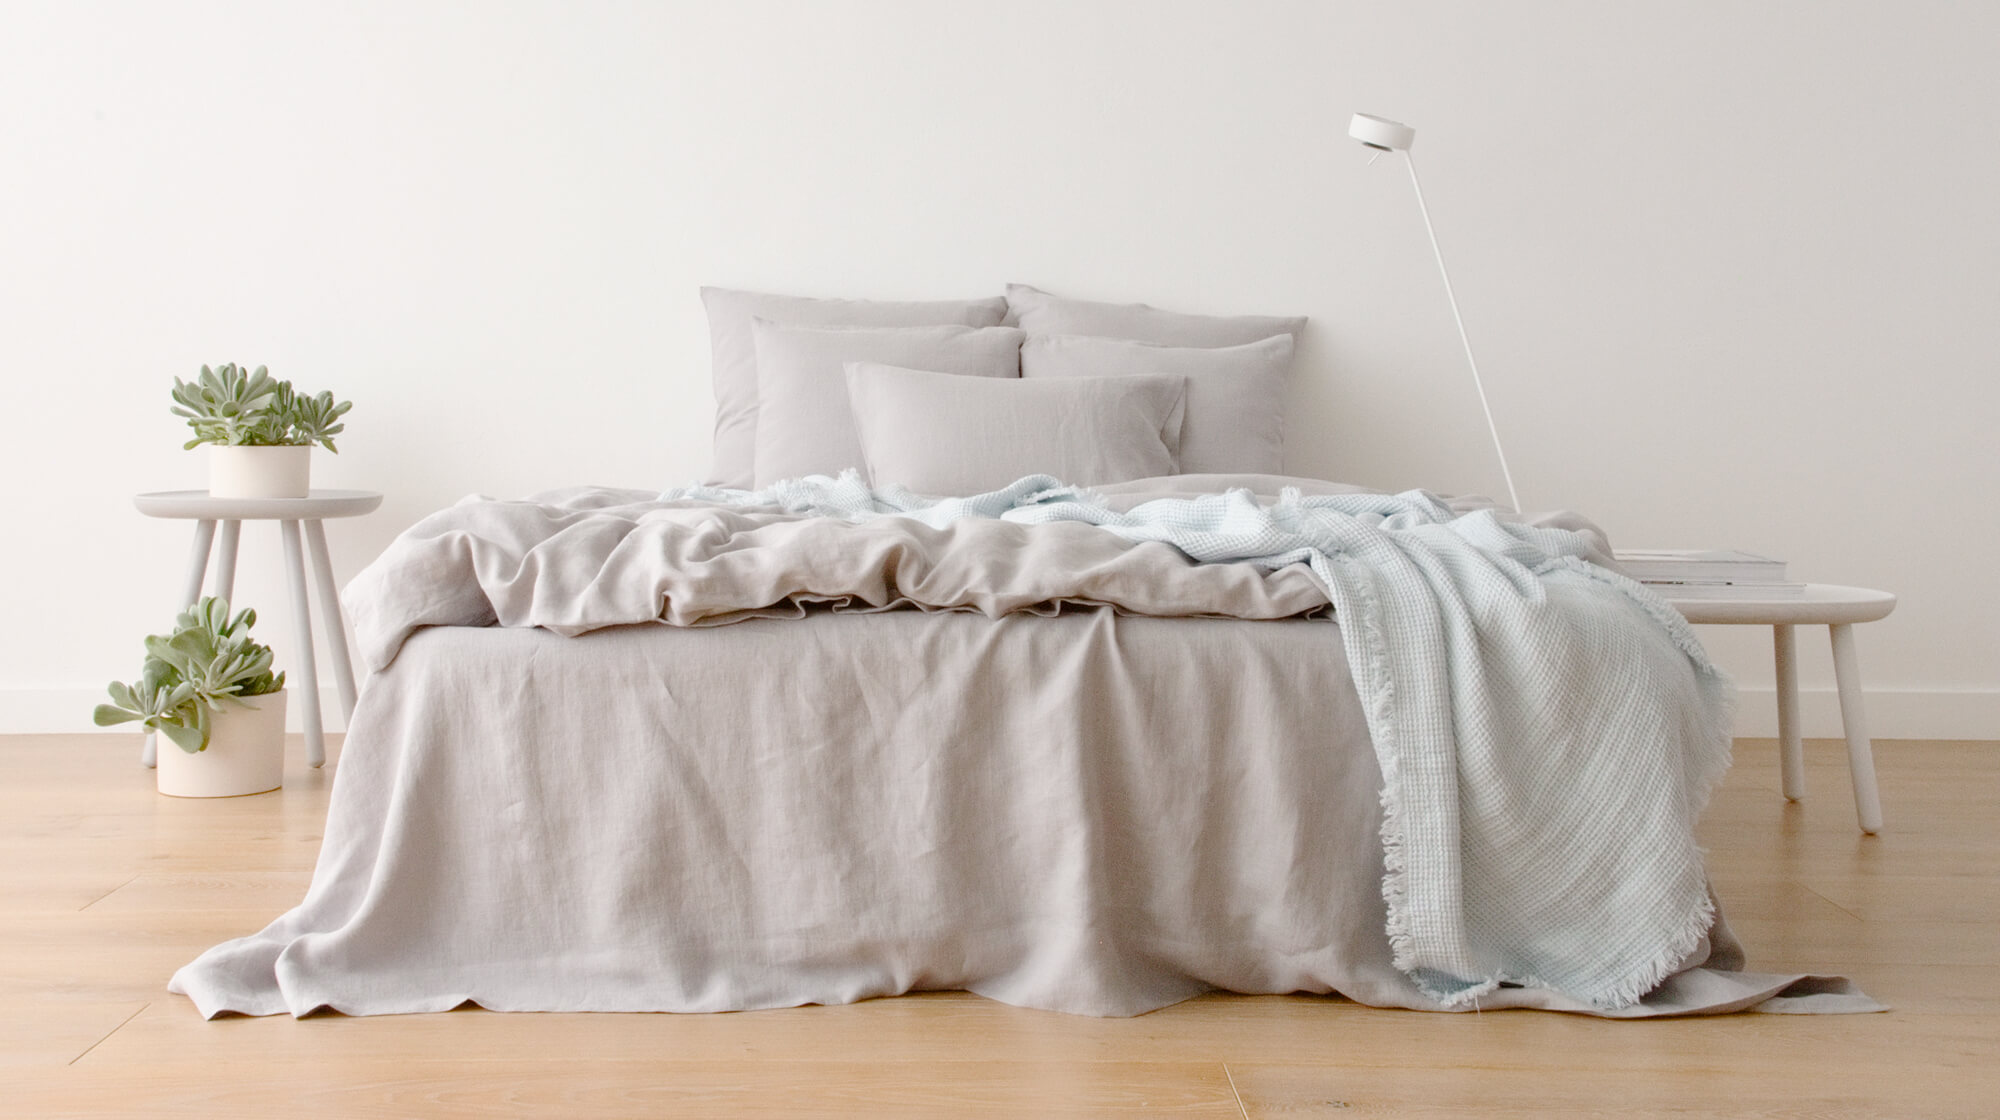 Eco home bedding | Fine bedding, Bed